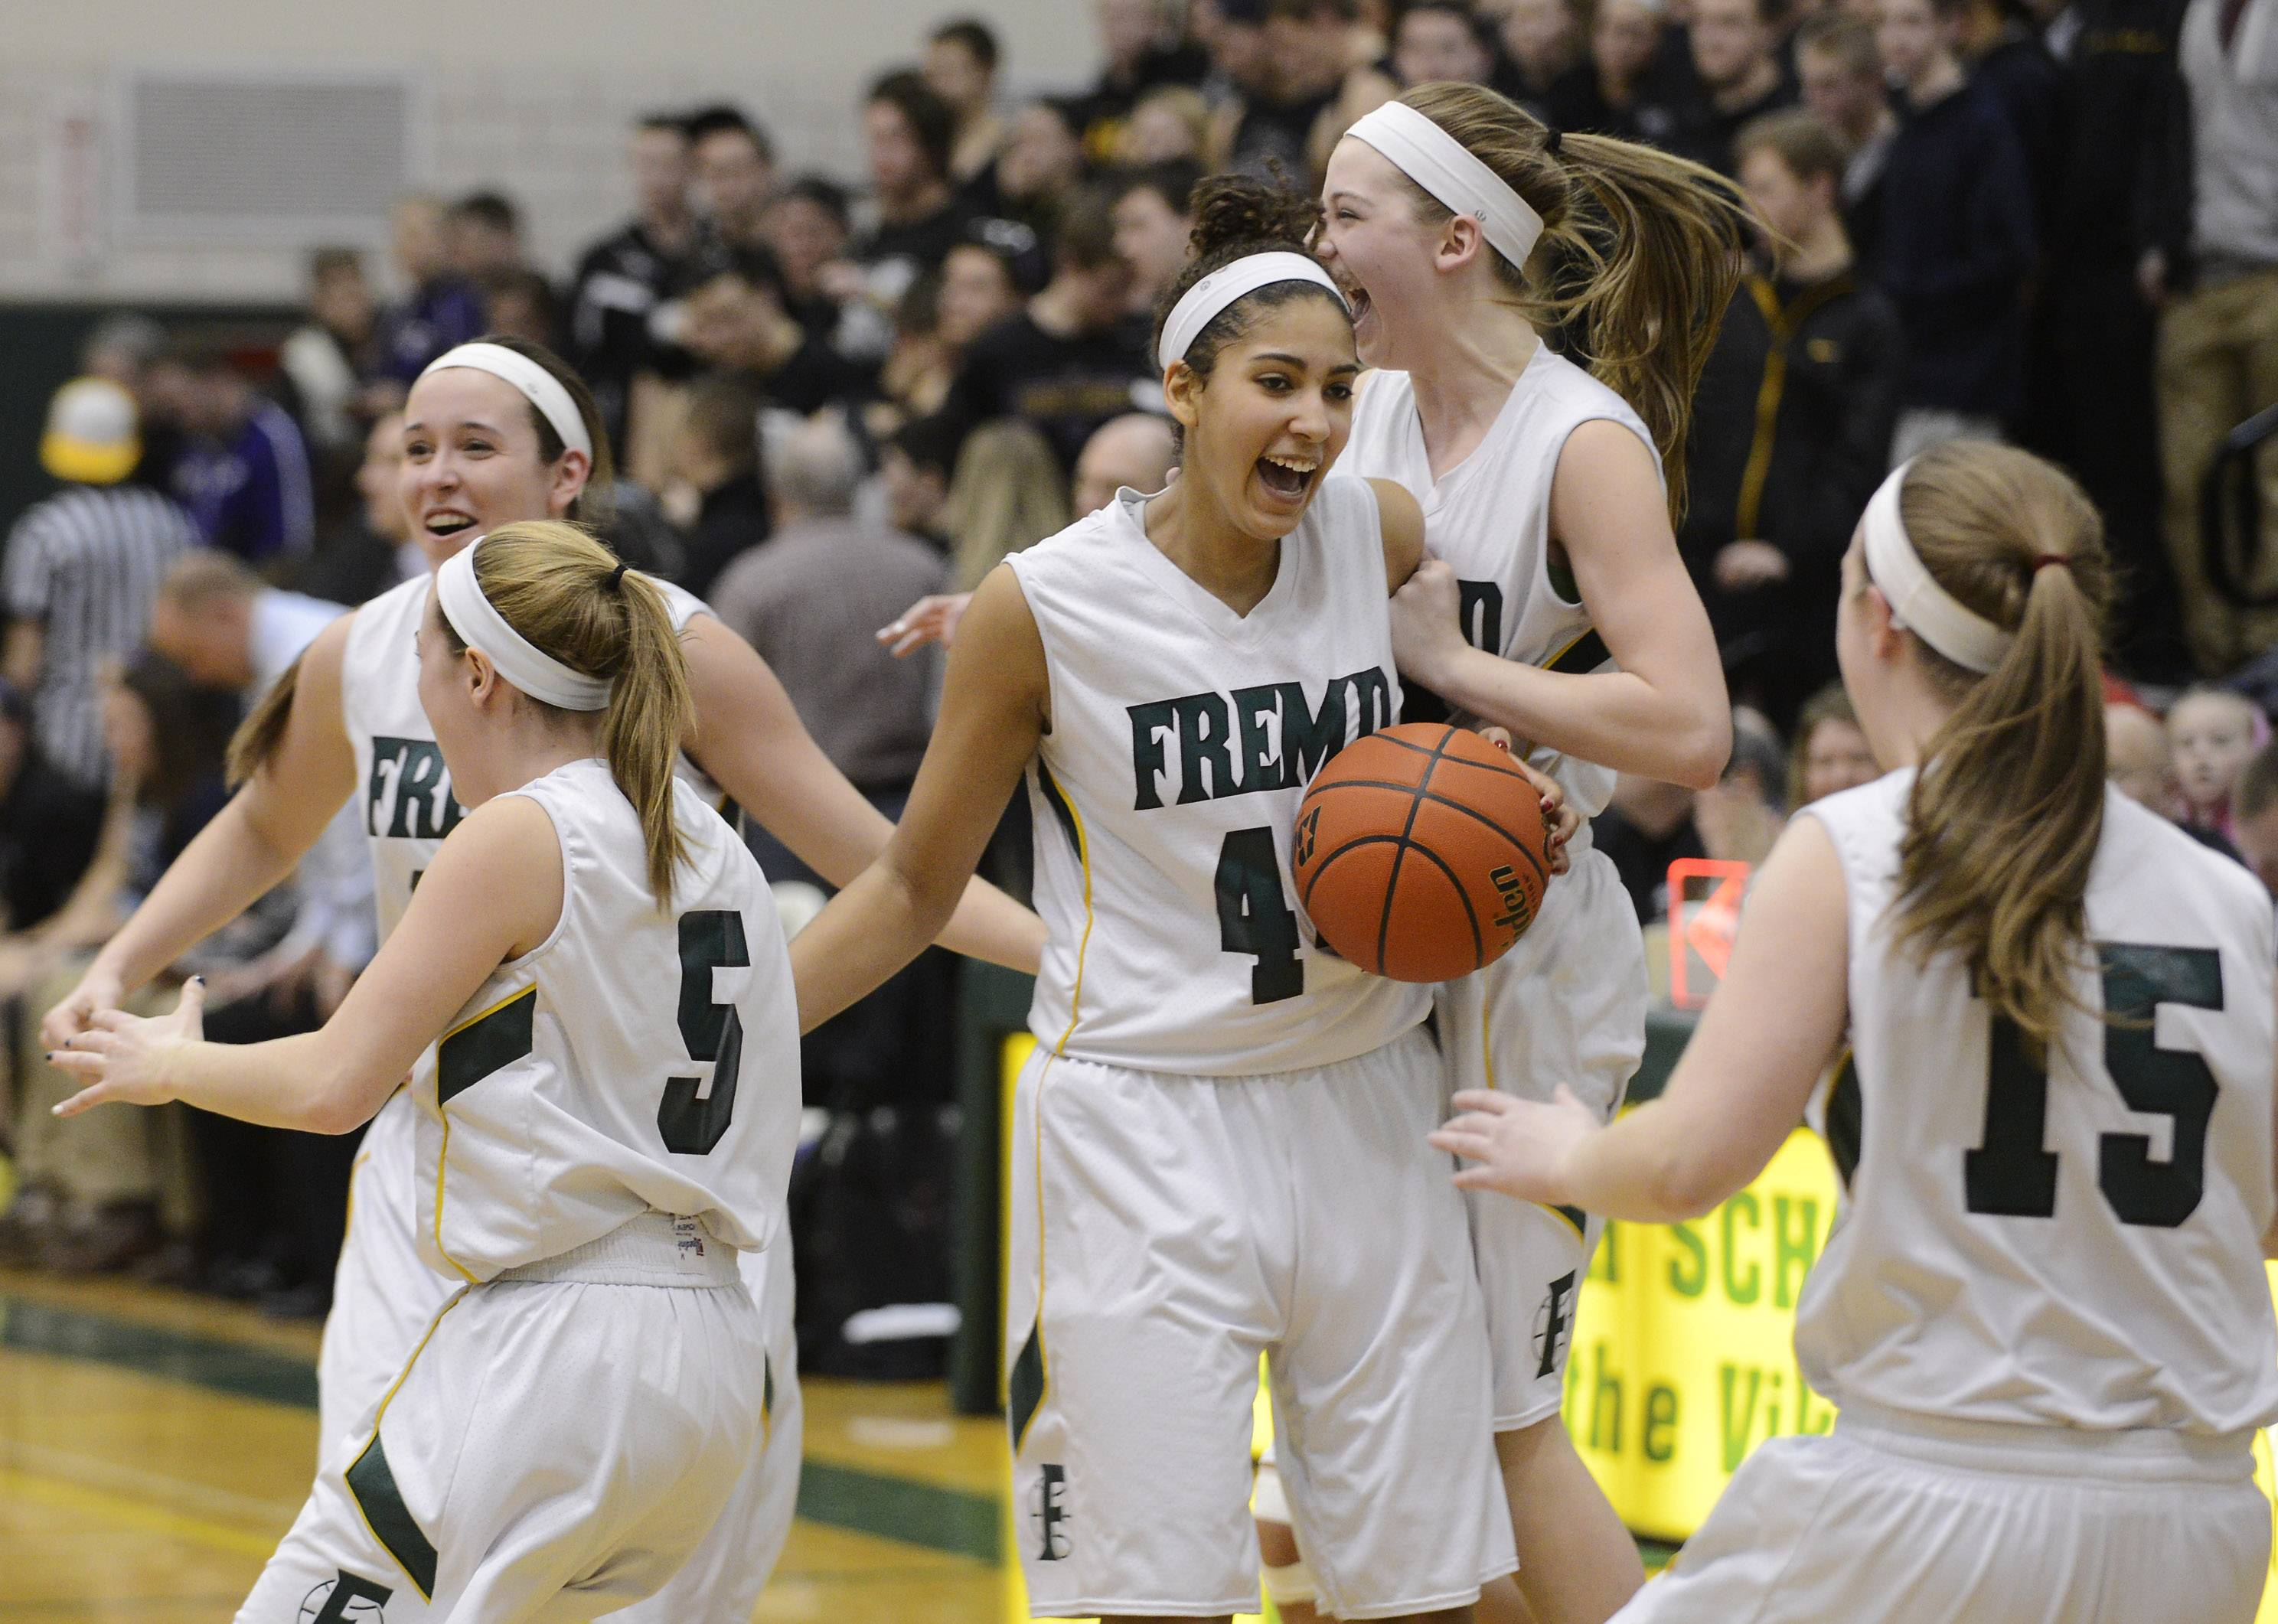 Fremd players, including Bryana Hopkins, with ball, celebrate their victory over Rolling Meadows during Wednesday's Mid-Suburban League championship game in Palatine.